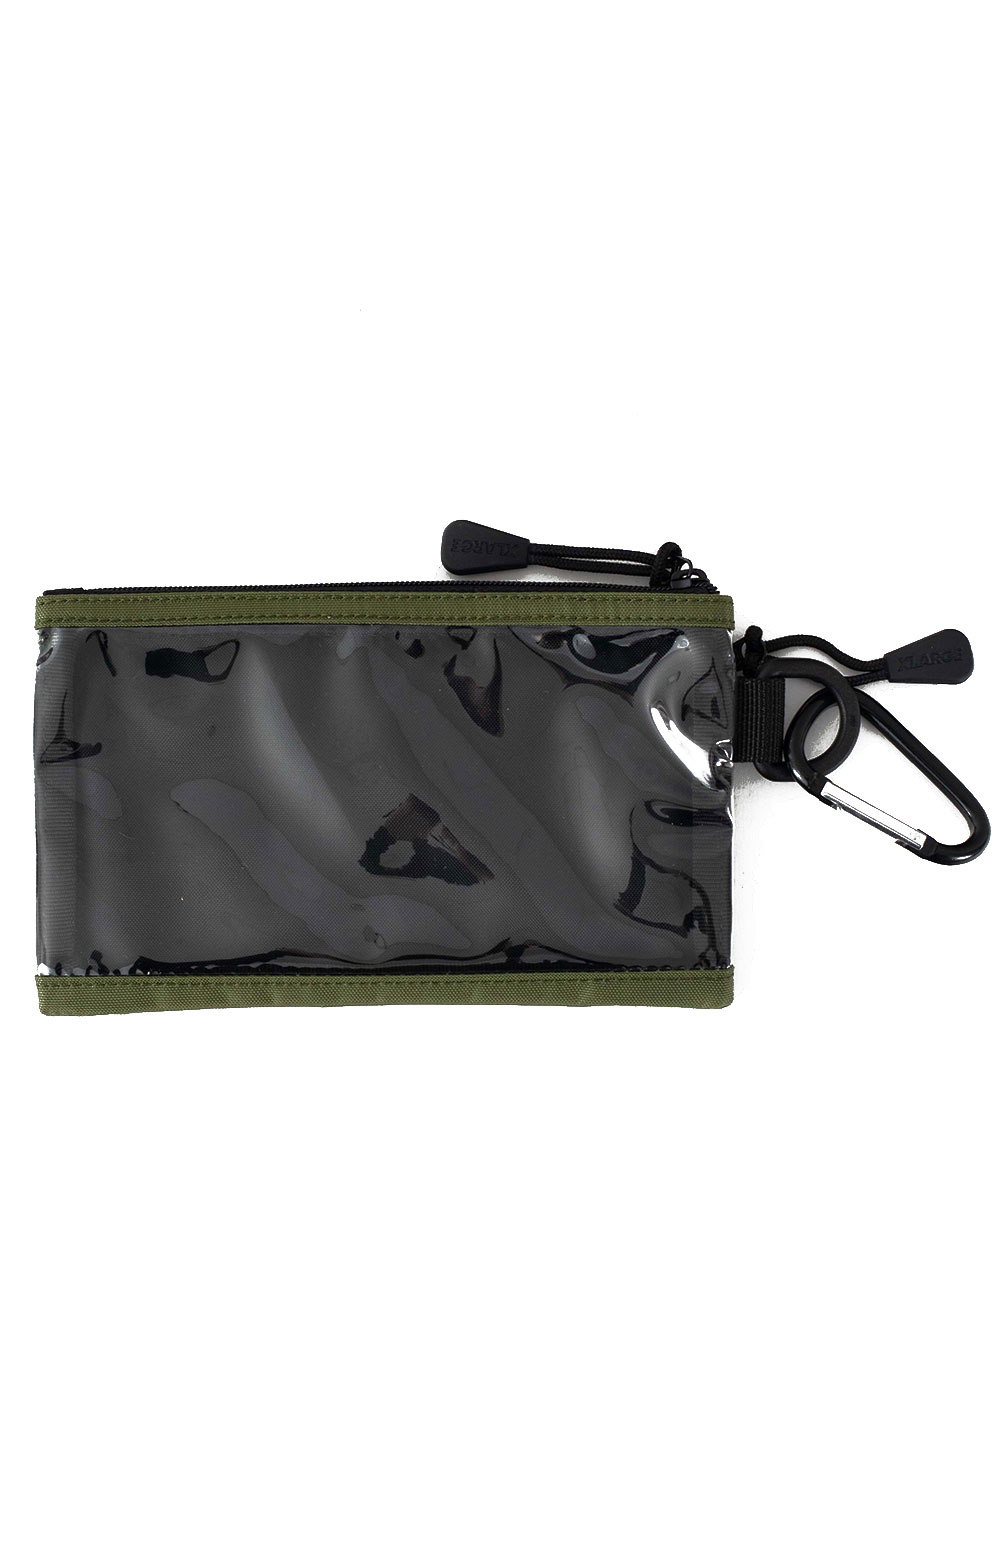 Cell Phone Pouch - Olive  2